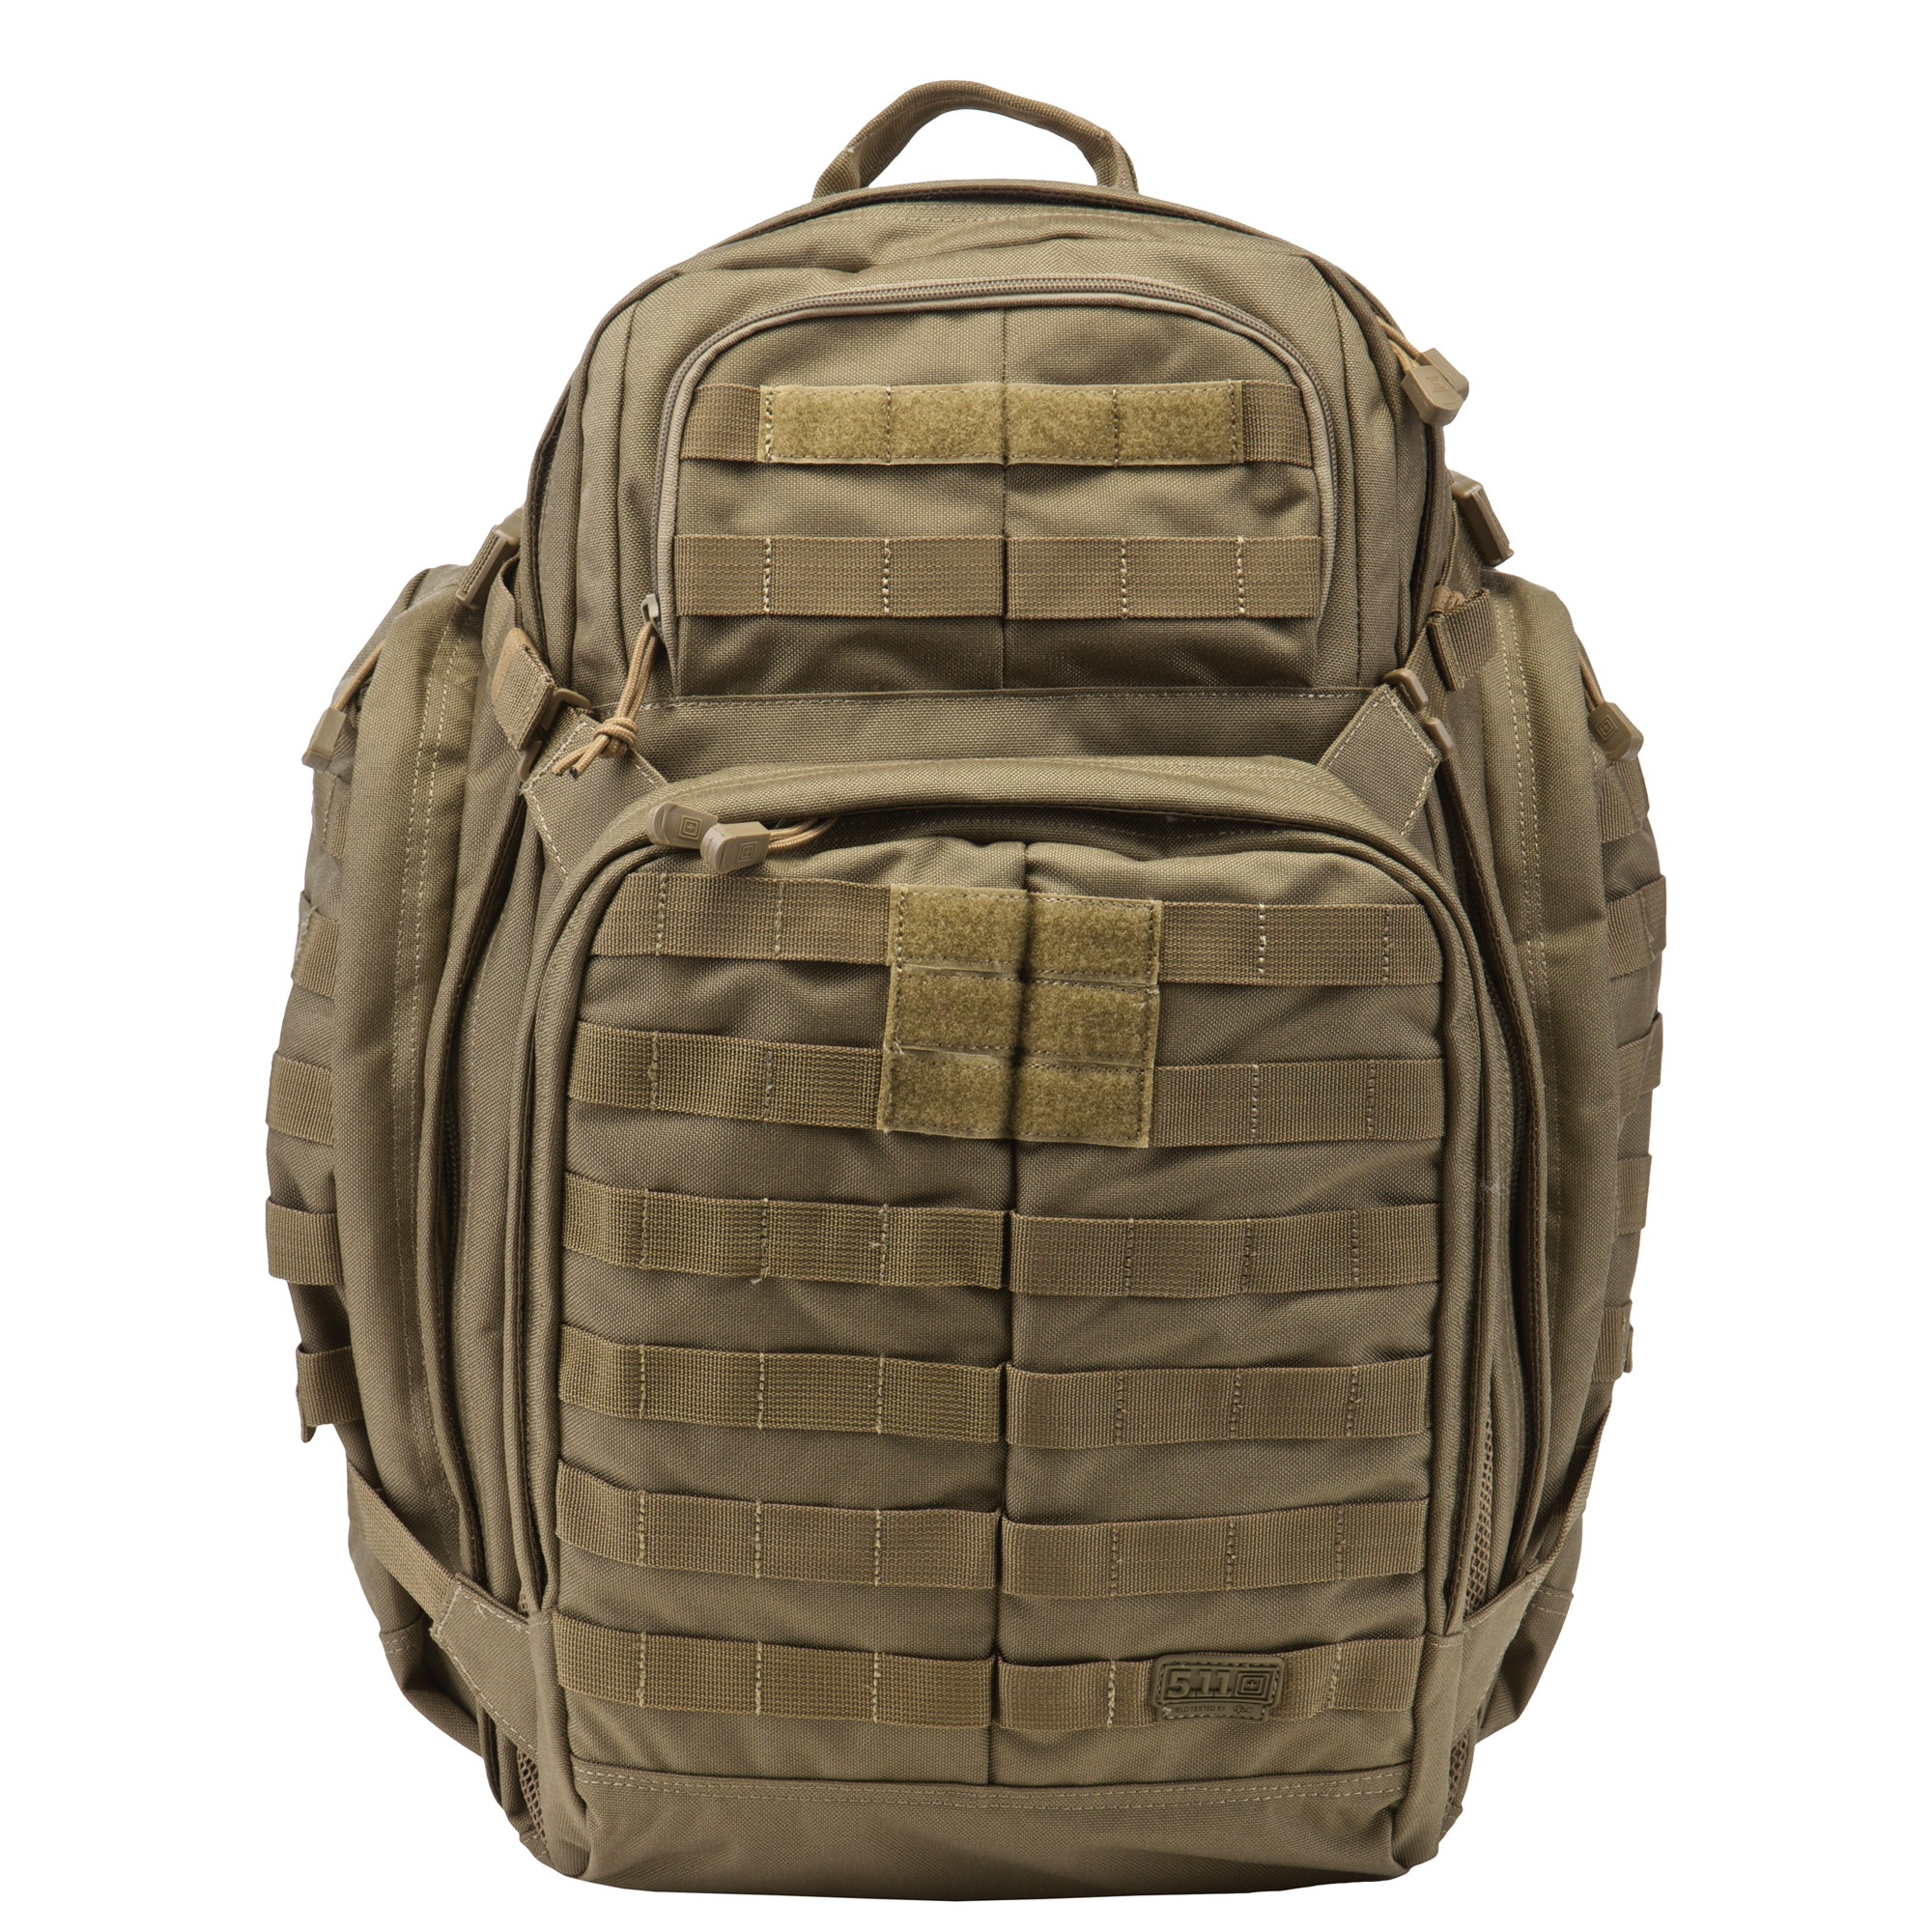 Review of 5.11 Rush 72 Back Pack